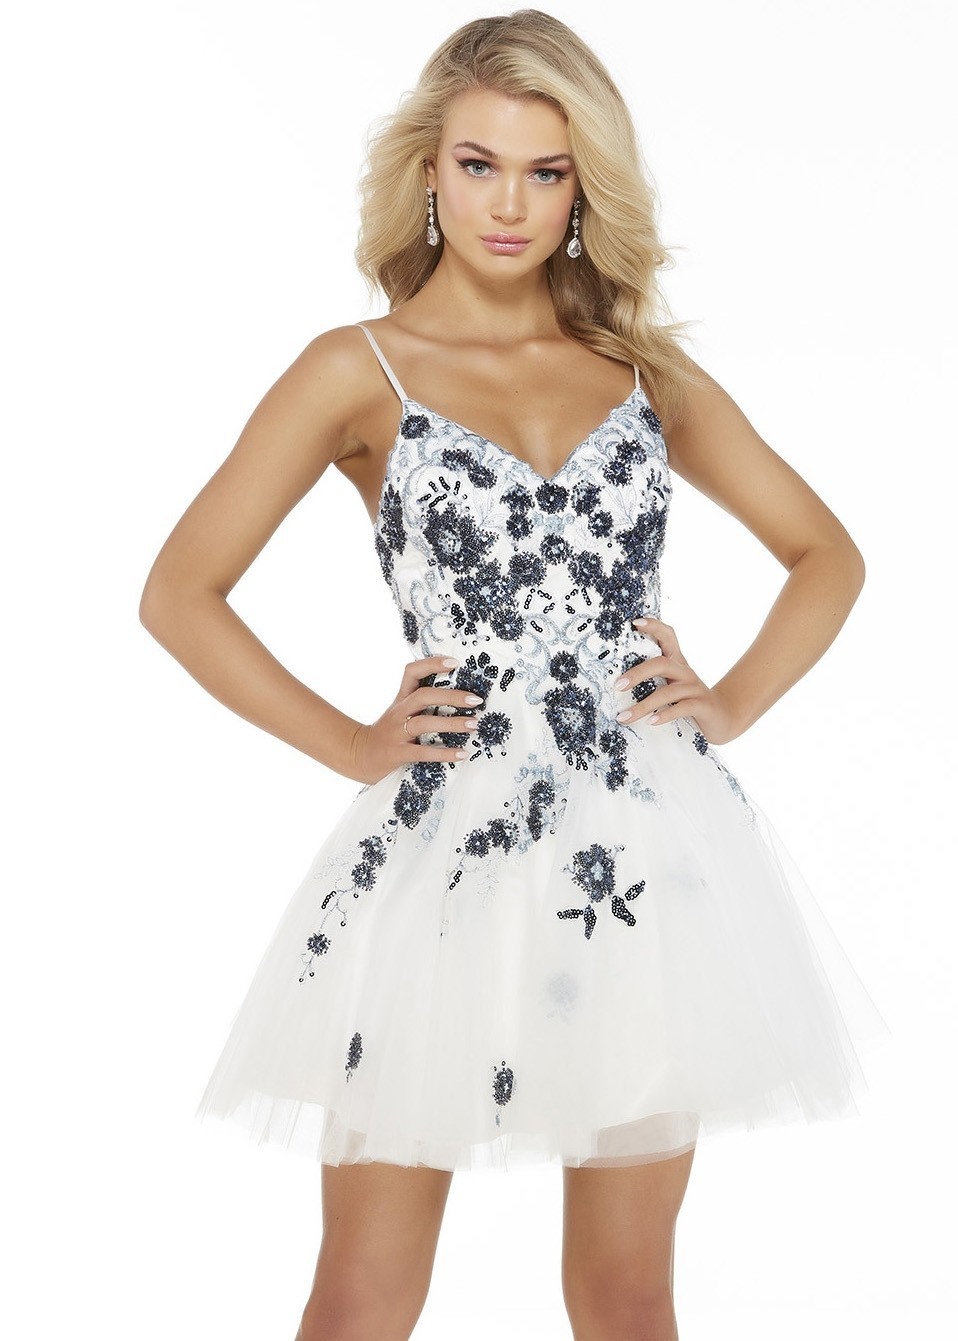 Alyce 3053 Floral Beaded Party Dress